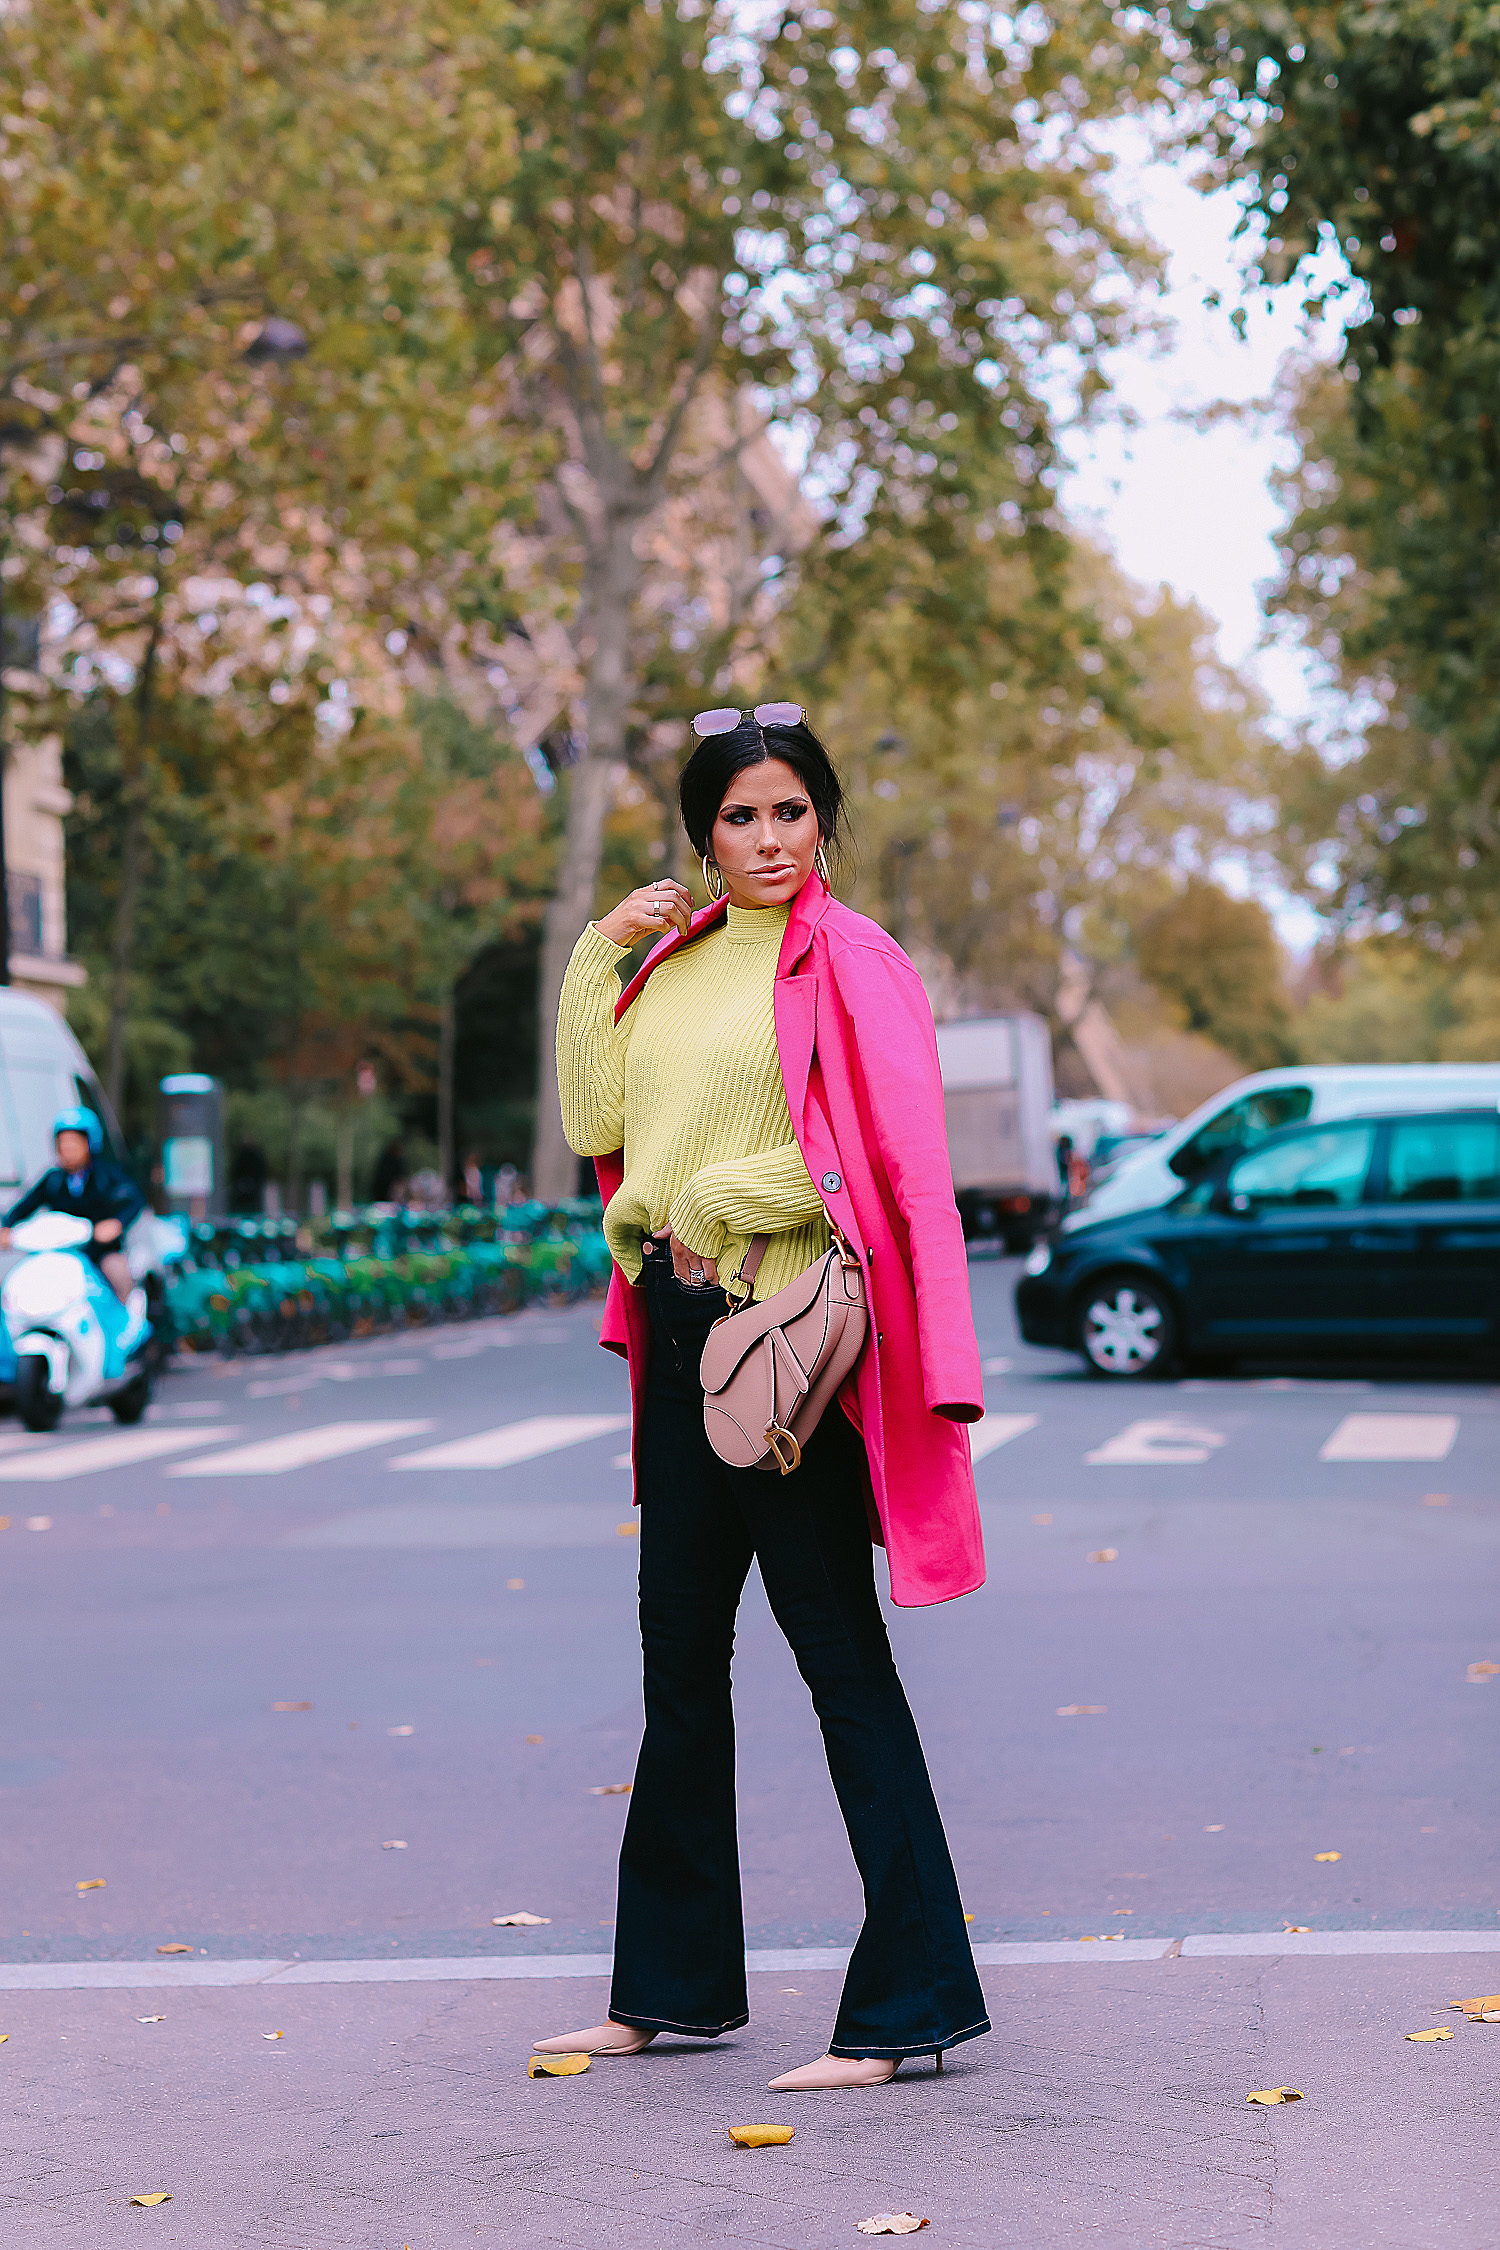 paris fall fashion 2019, fall fashion 2019, banana republic fall outfits 2019, paris outfit ideas fall and winter, what to wear in paris in october november, emily ann gemma-2 | Do You Like Neon Or Neutrals?! Two Everyday Fall Outfits by popular Oklahoma fashion blog, The Sweetest Thing: image of a woman outside in Paris and wearing a Banana Republic High-Rise Flare Jean, Banana Republic Double-Faced Topcoat, and Banana Republic Chunky High Crew-Neck Sweater.